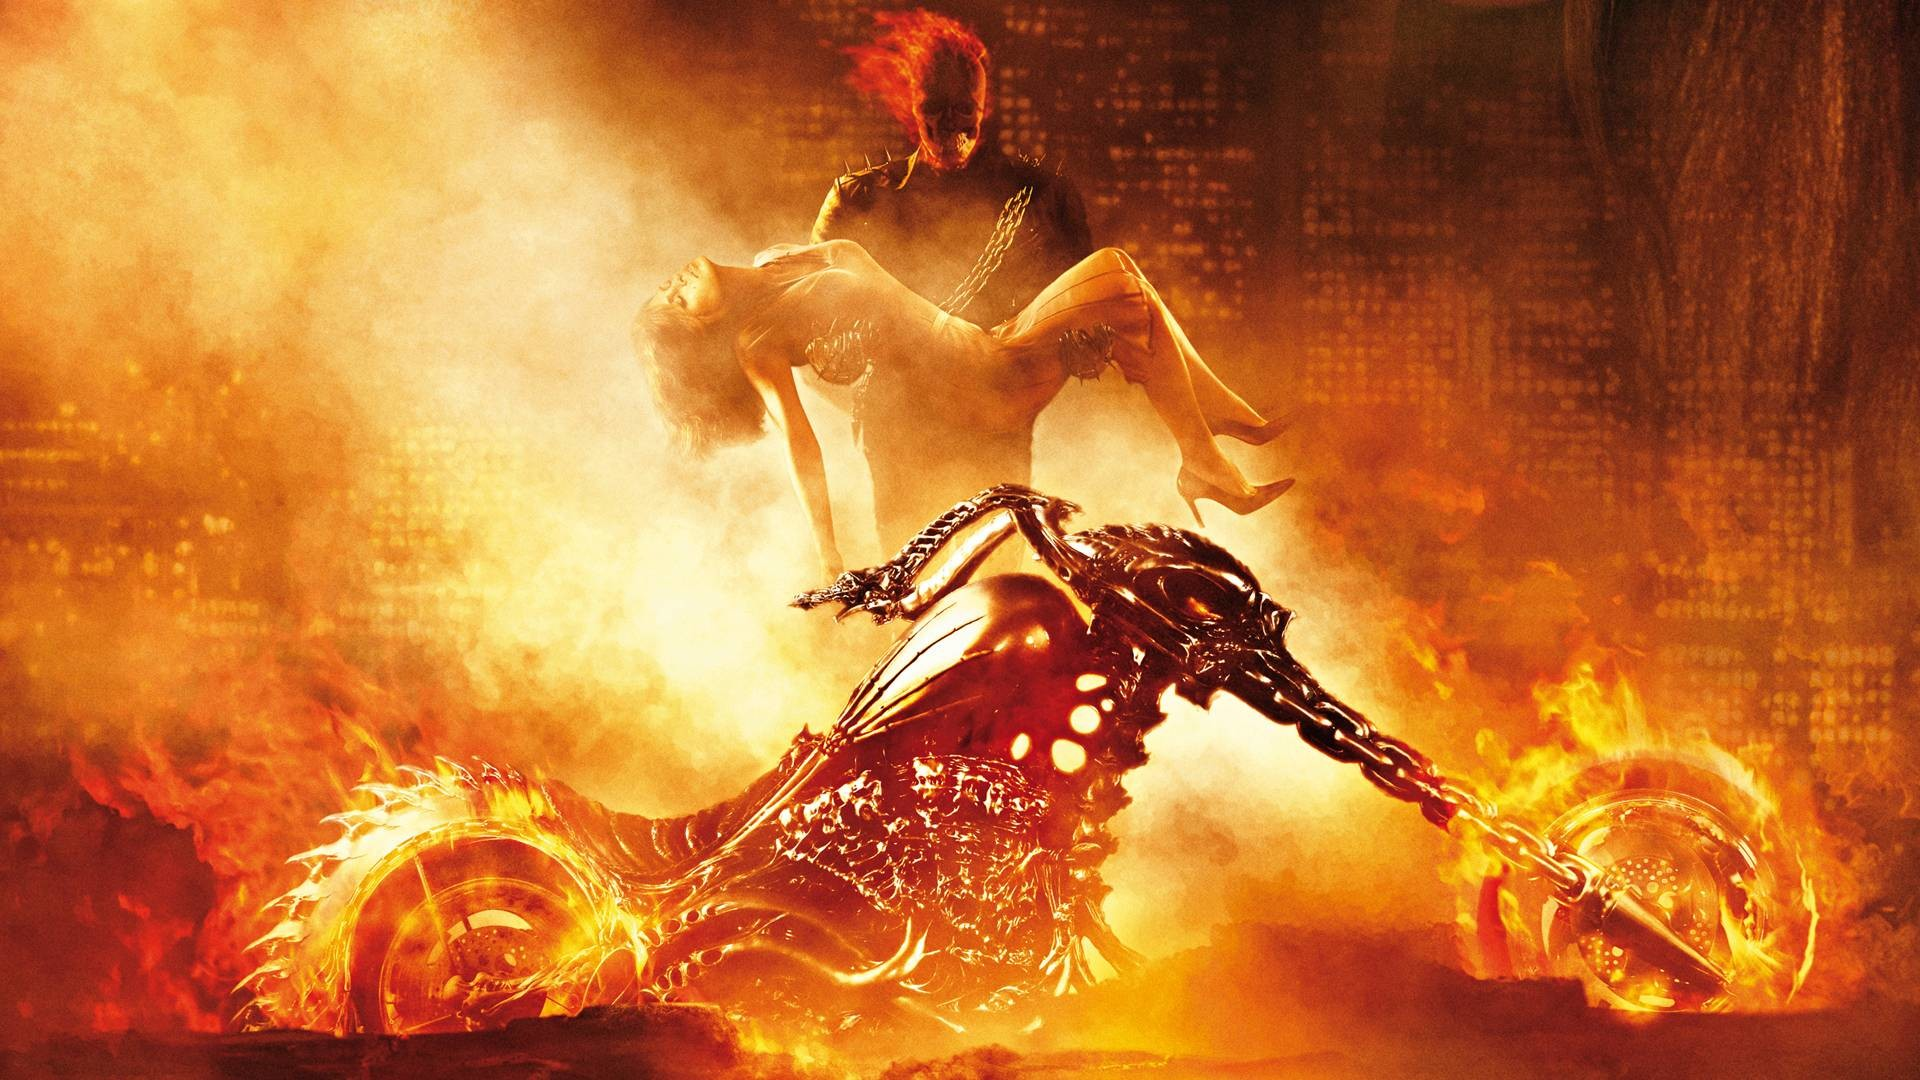 Download Free Ghost Rider Wallpaper | HD Wallpapers .